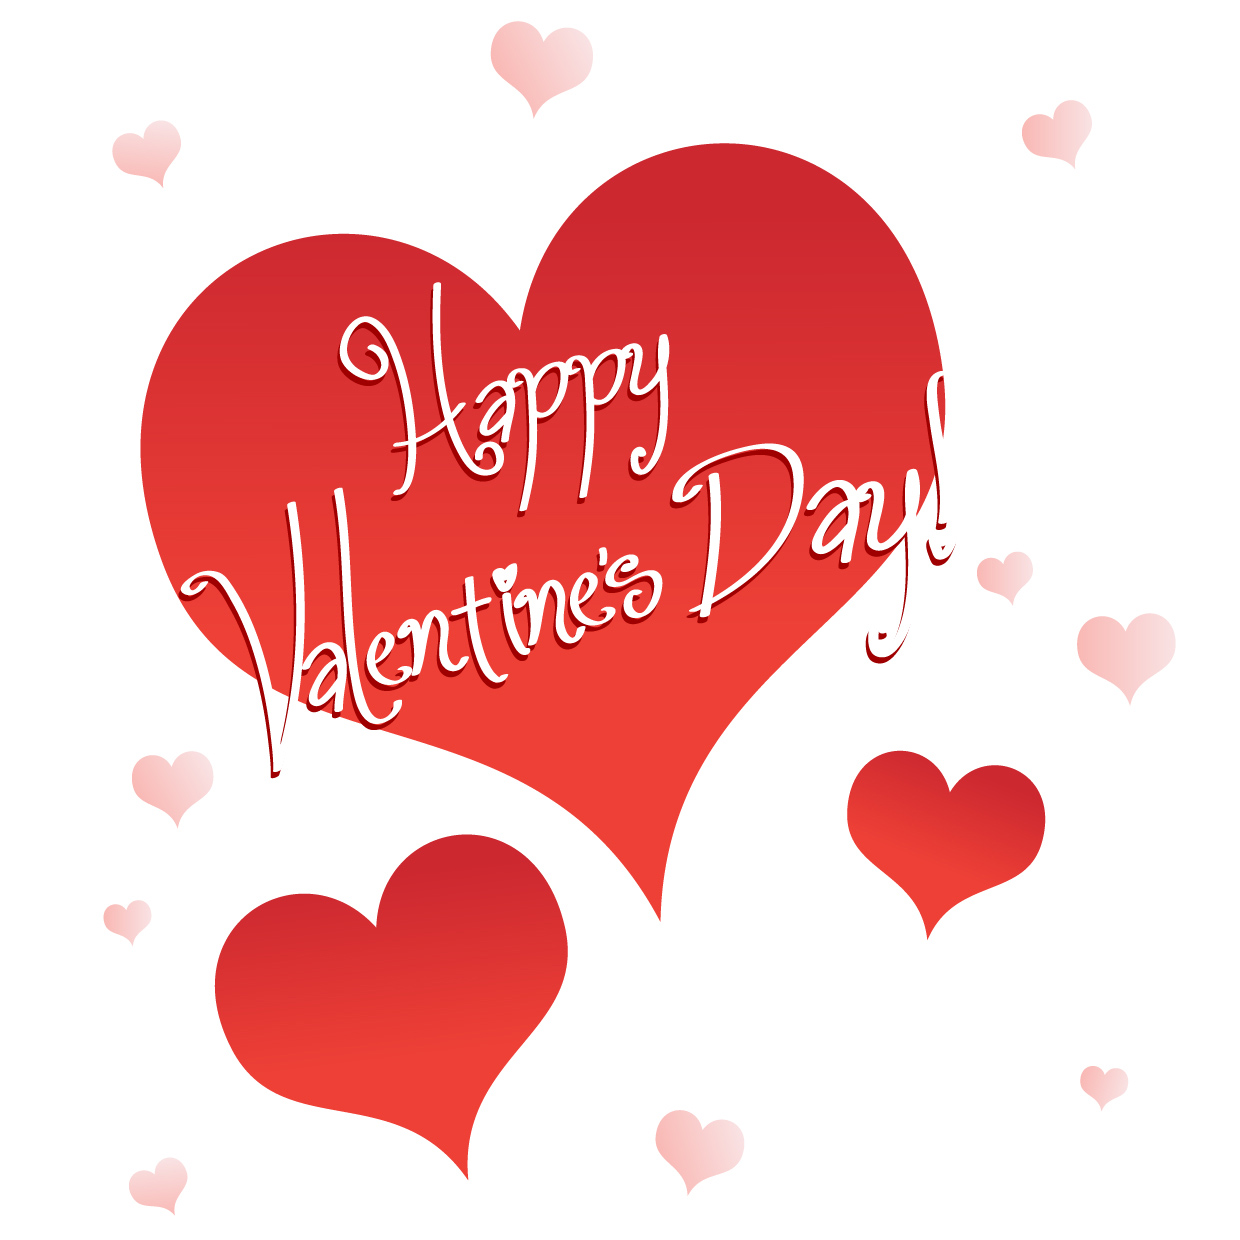 Free Clipart Valentines Day & Valentines Day Clip Art Images.